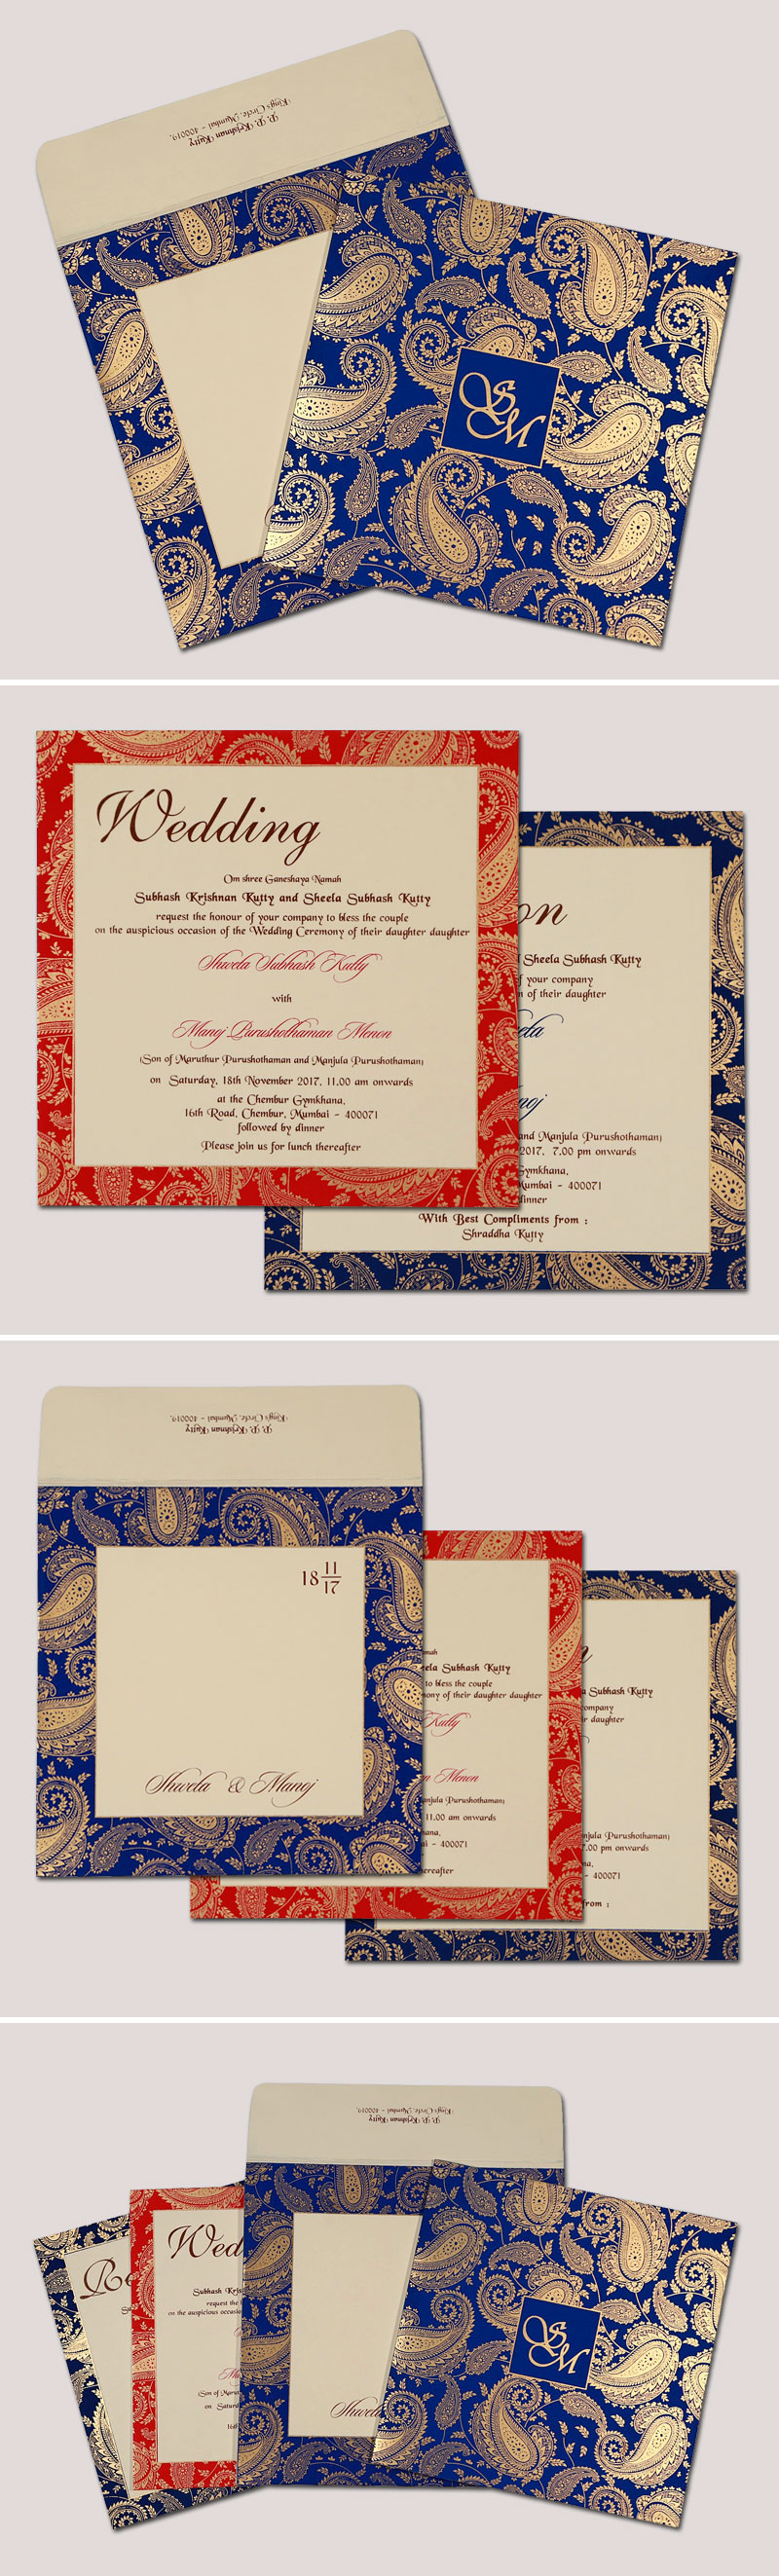 wedding card manufacturers in tamilnadu%0A invite  invitations  Indian wedding invite  wedding card  bride  indian  bride  bride to be  groom  indian groom  groom to be  stationery  couture i u